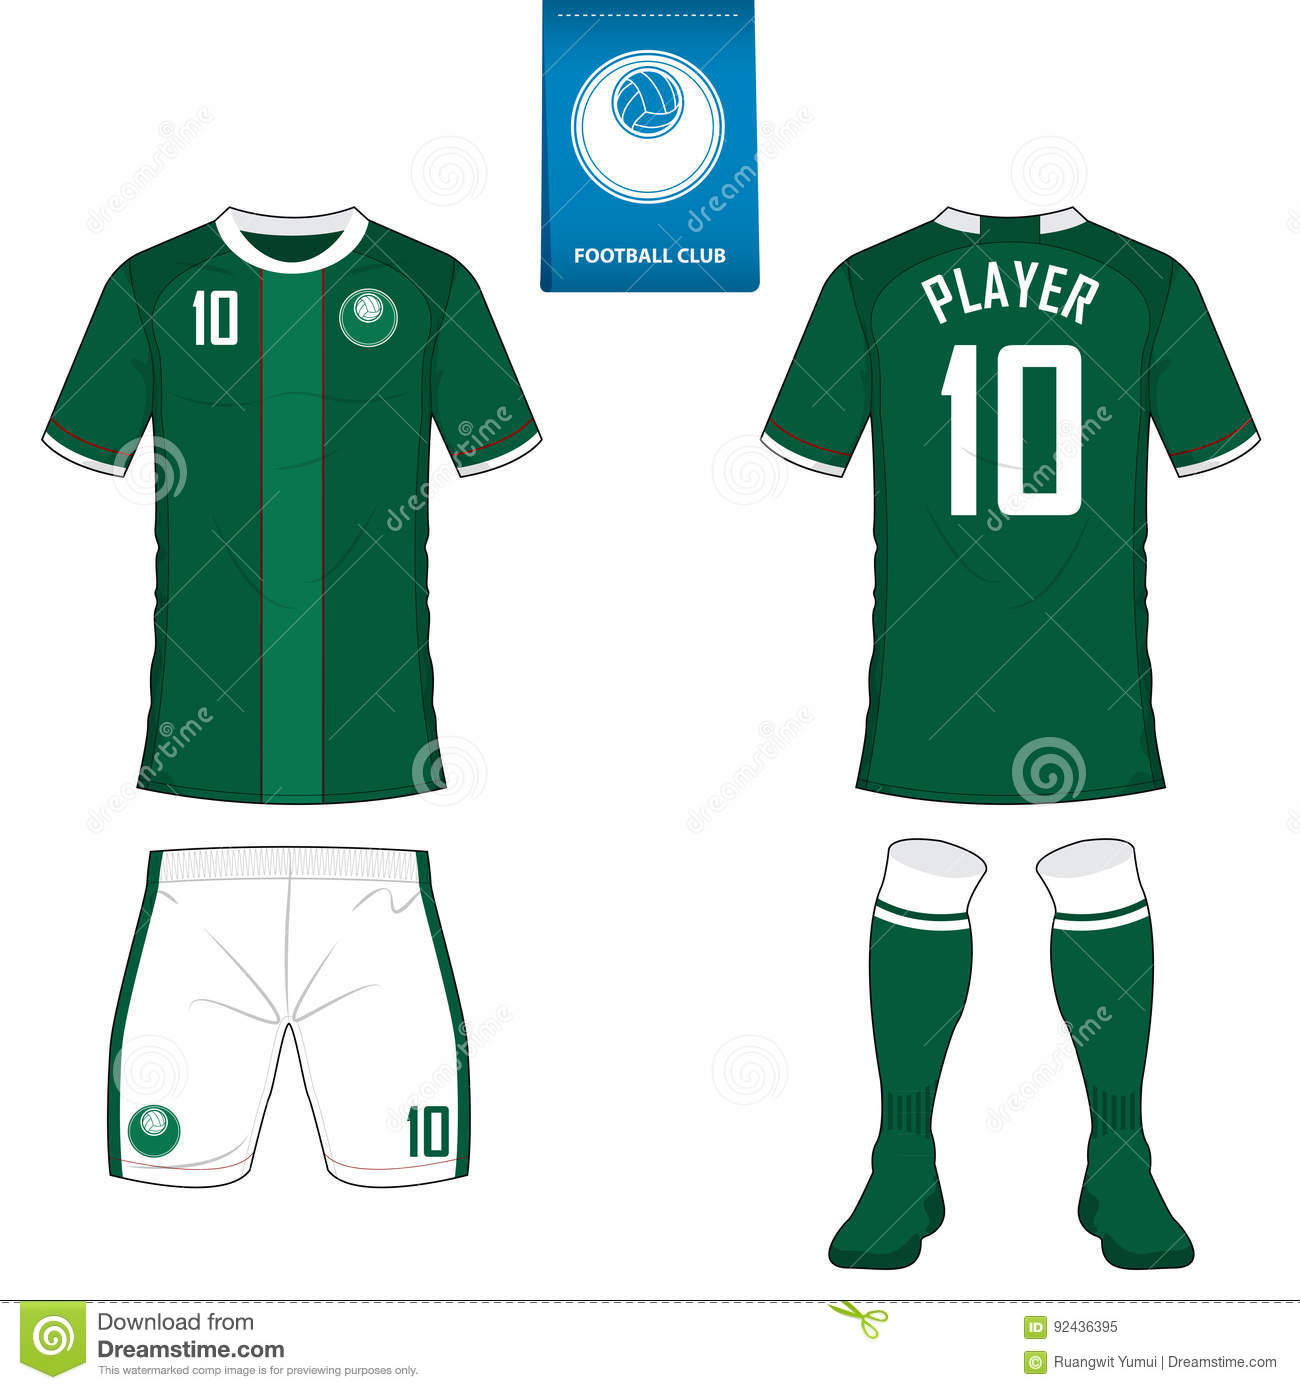 208f3c9cd Set of soccer kit or football jersey template for football club. Short  sleeve football shirt mock up. Front and back view soccer uniform.